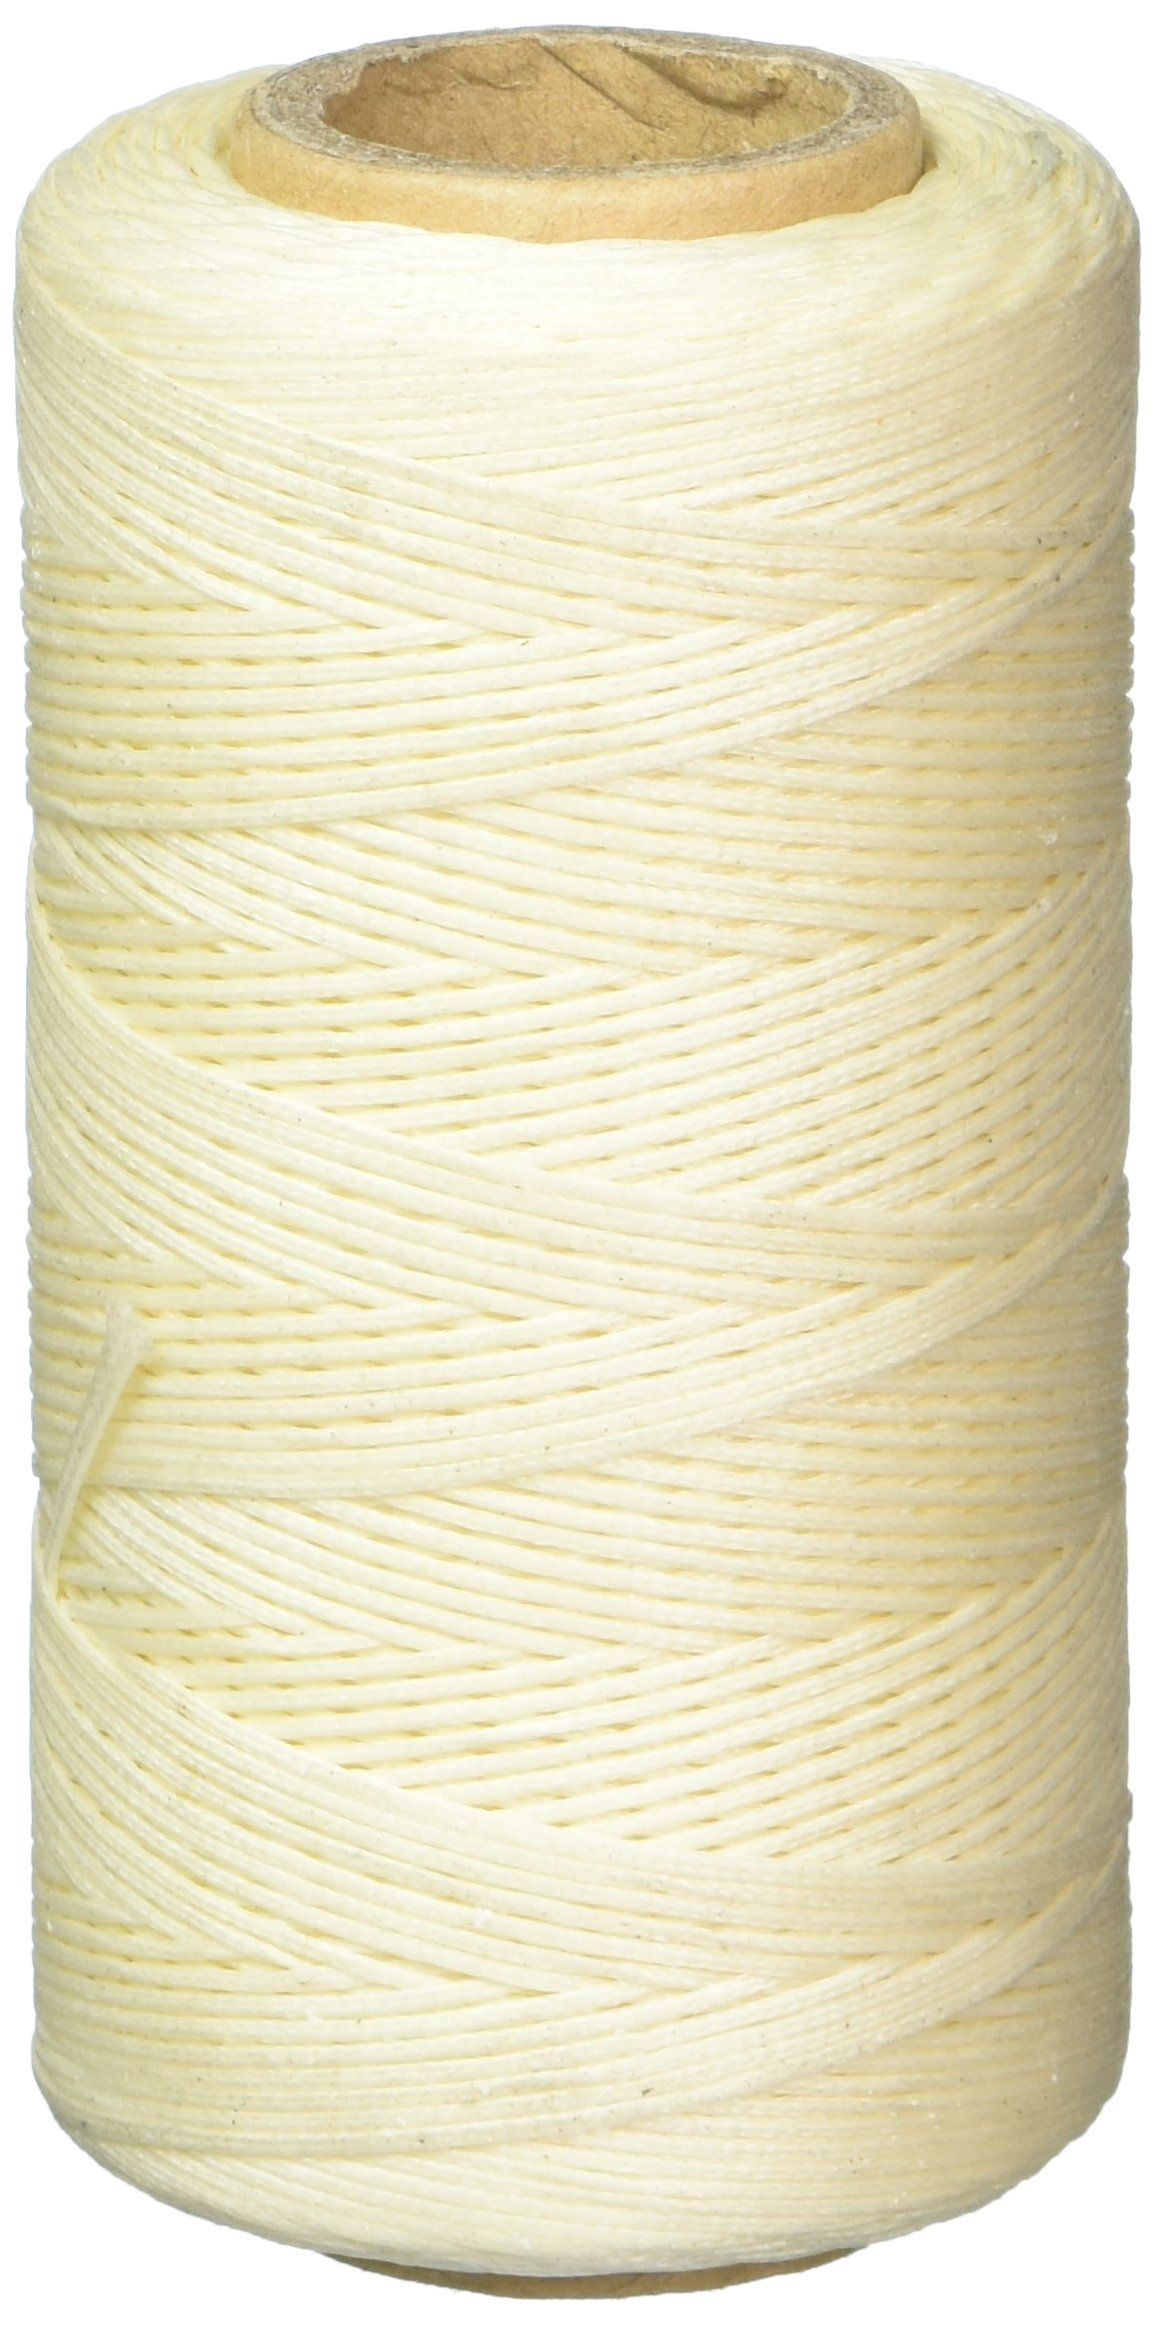 Dark Blue 284Yard 1mm 150D Spool Wax String Cord Sewing Craft Tool Portable for DIY Handicraft Leather Products Beading Hand Stitching Flexzion Flat Waxed Thread